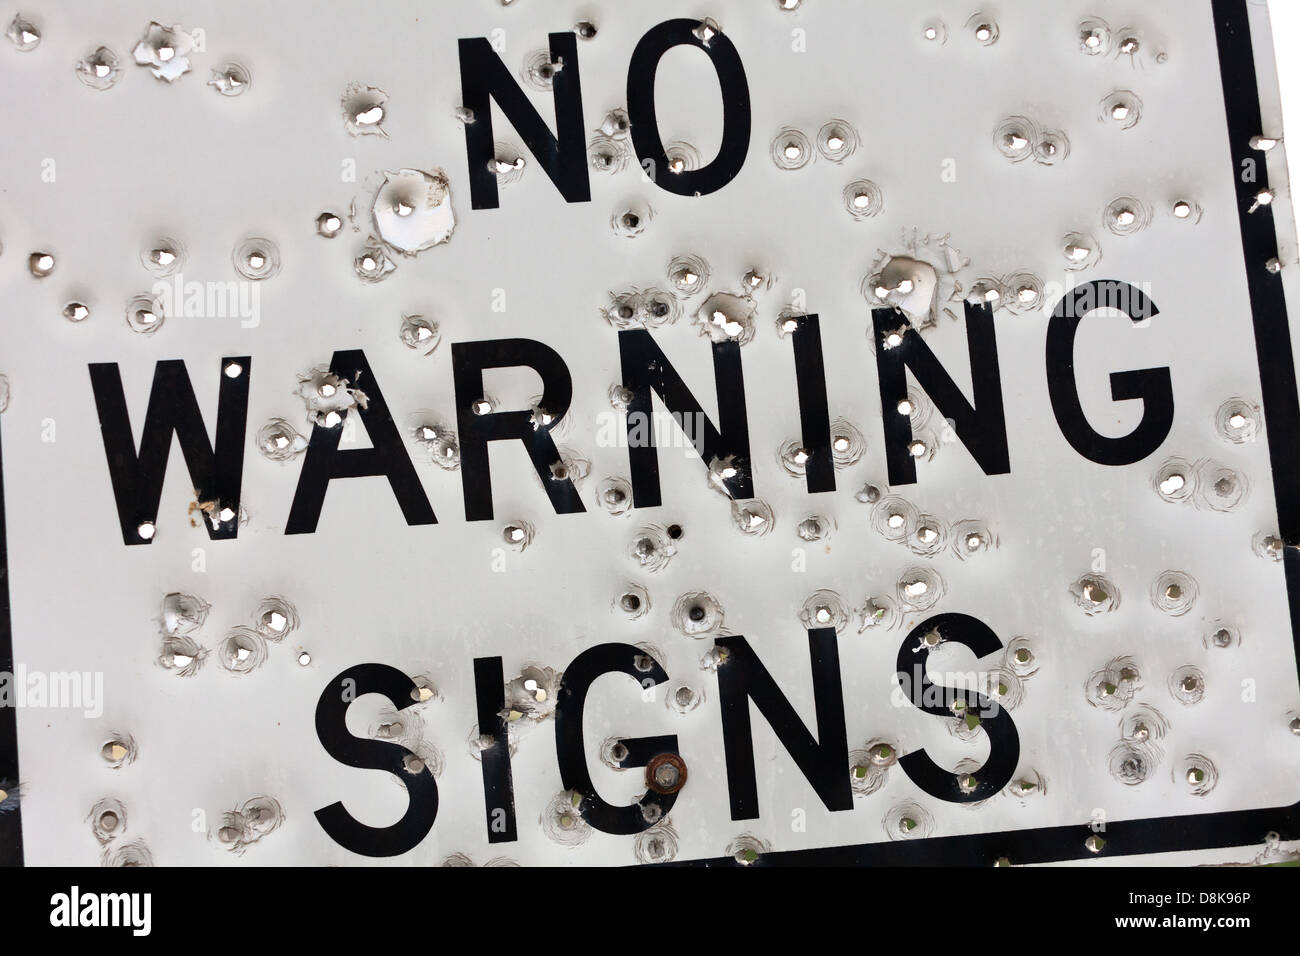 Warning Sign with Bullet Hole - Stock Image